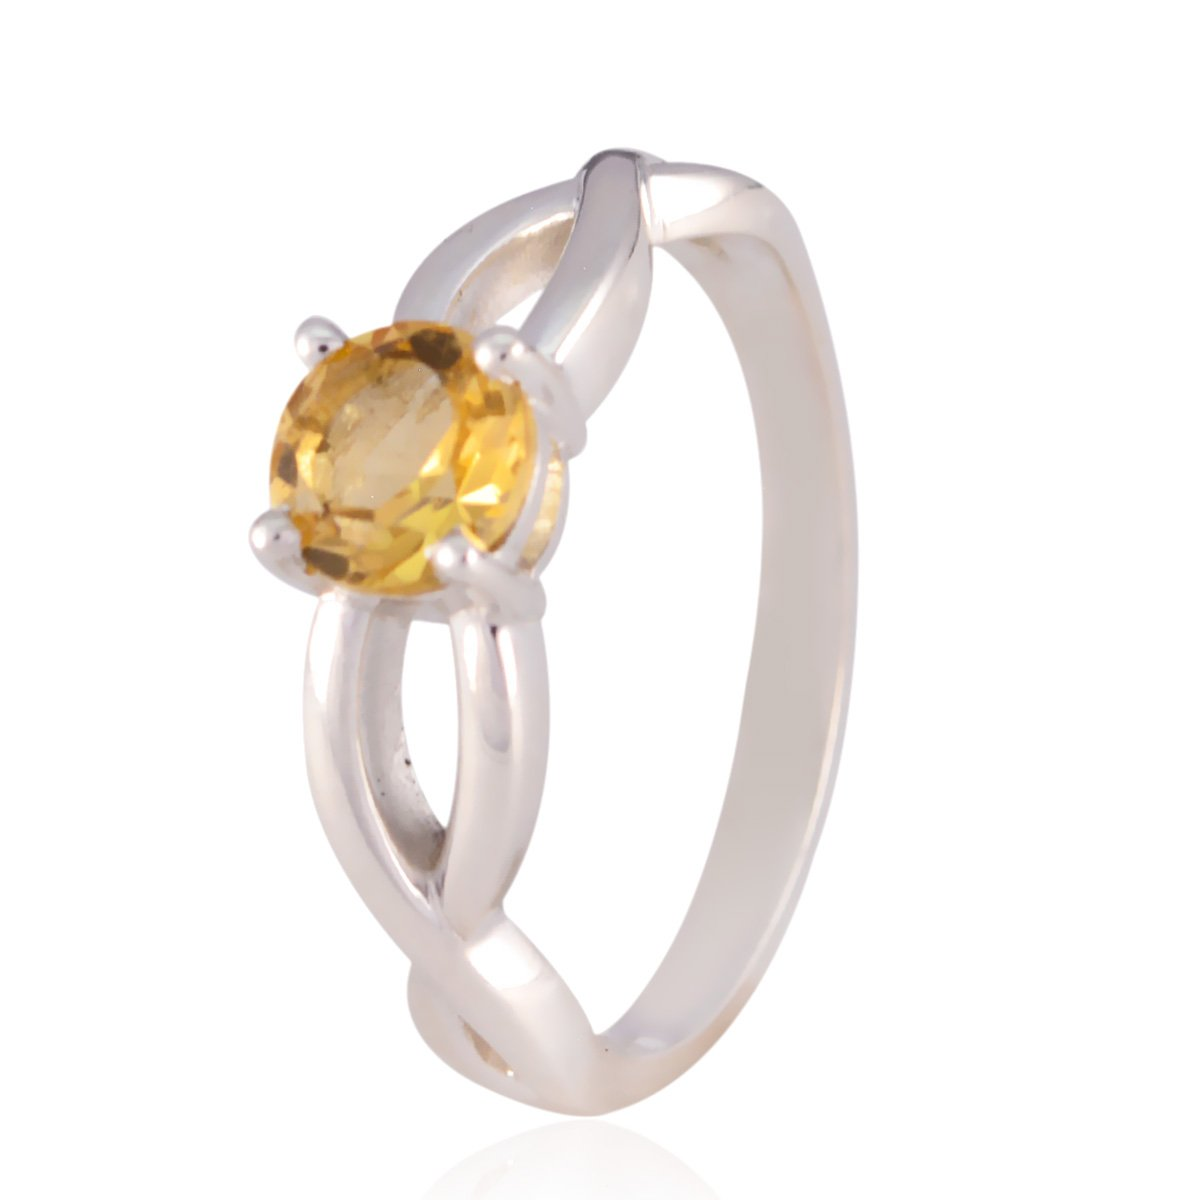 Home d/écor Good Selling Shops Gift for Childrens Day Dainty Ring Lucky Gemstone Round Faceted Citrine Rings Solid Silver Yellow Citrine Lucky Gemstone Ring